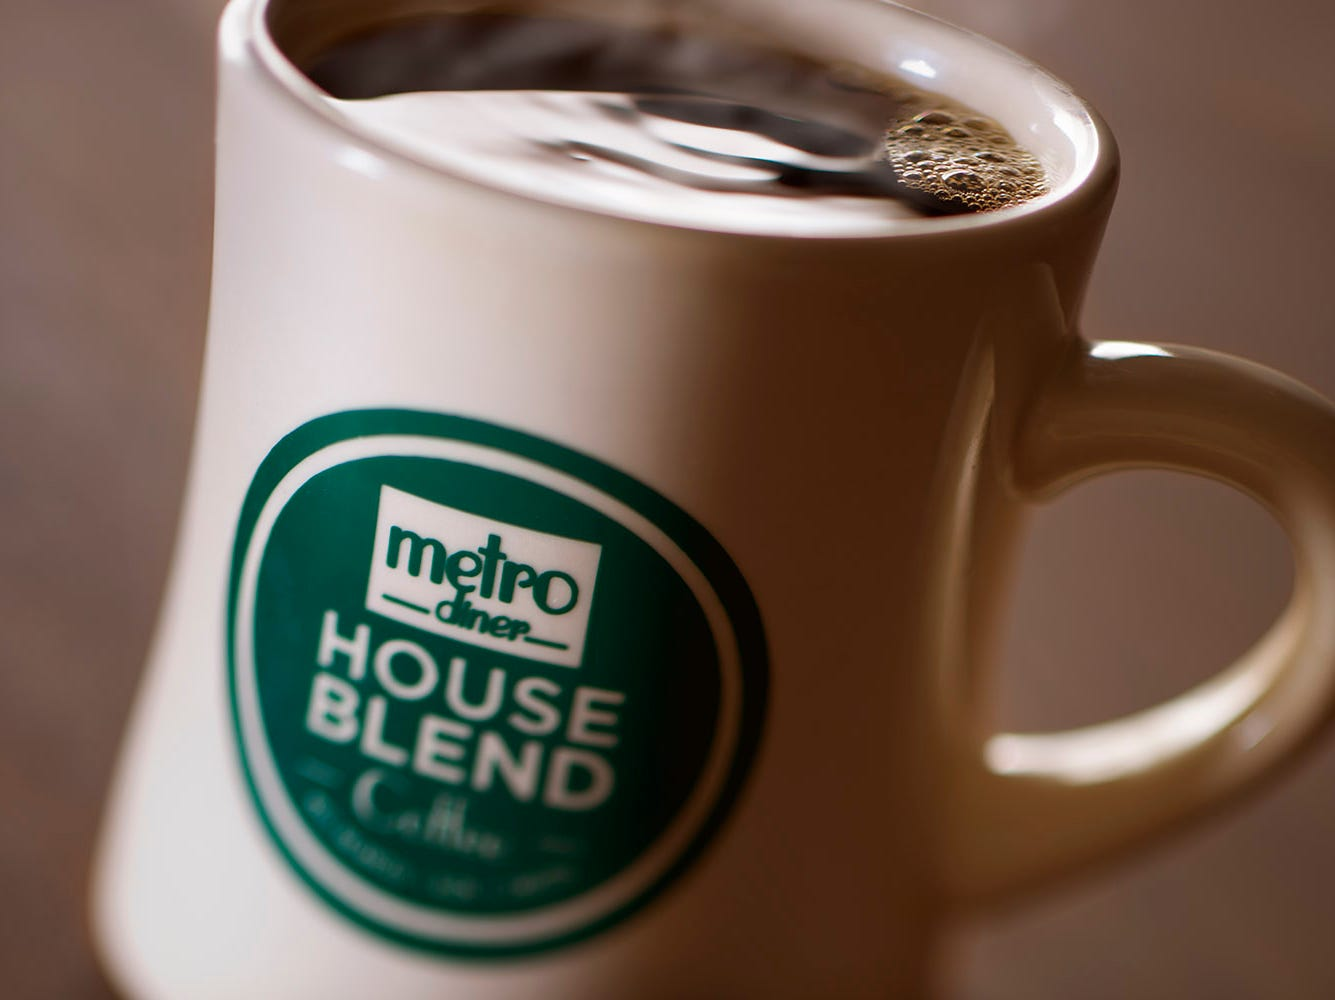 Purchase one of Metro Diner's vintage coffee mugs and get free refills on each visit.